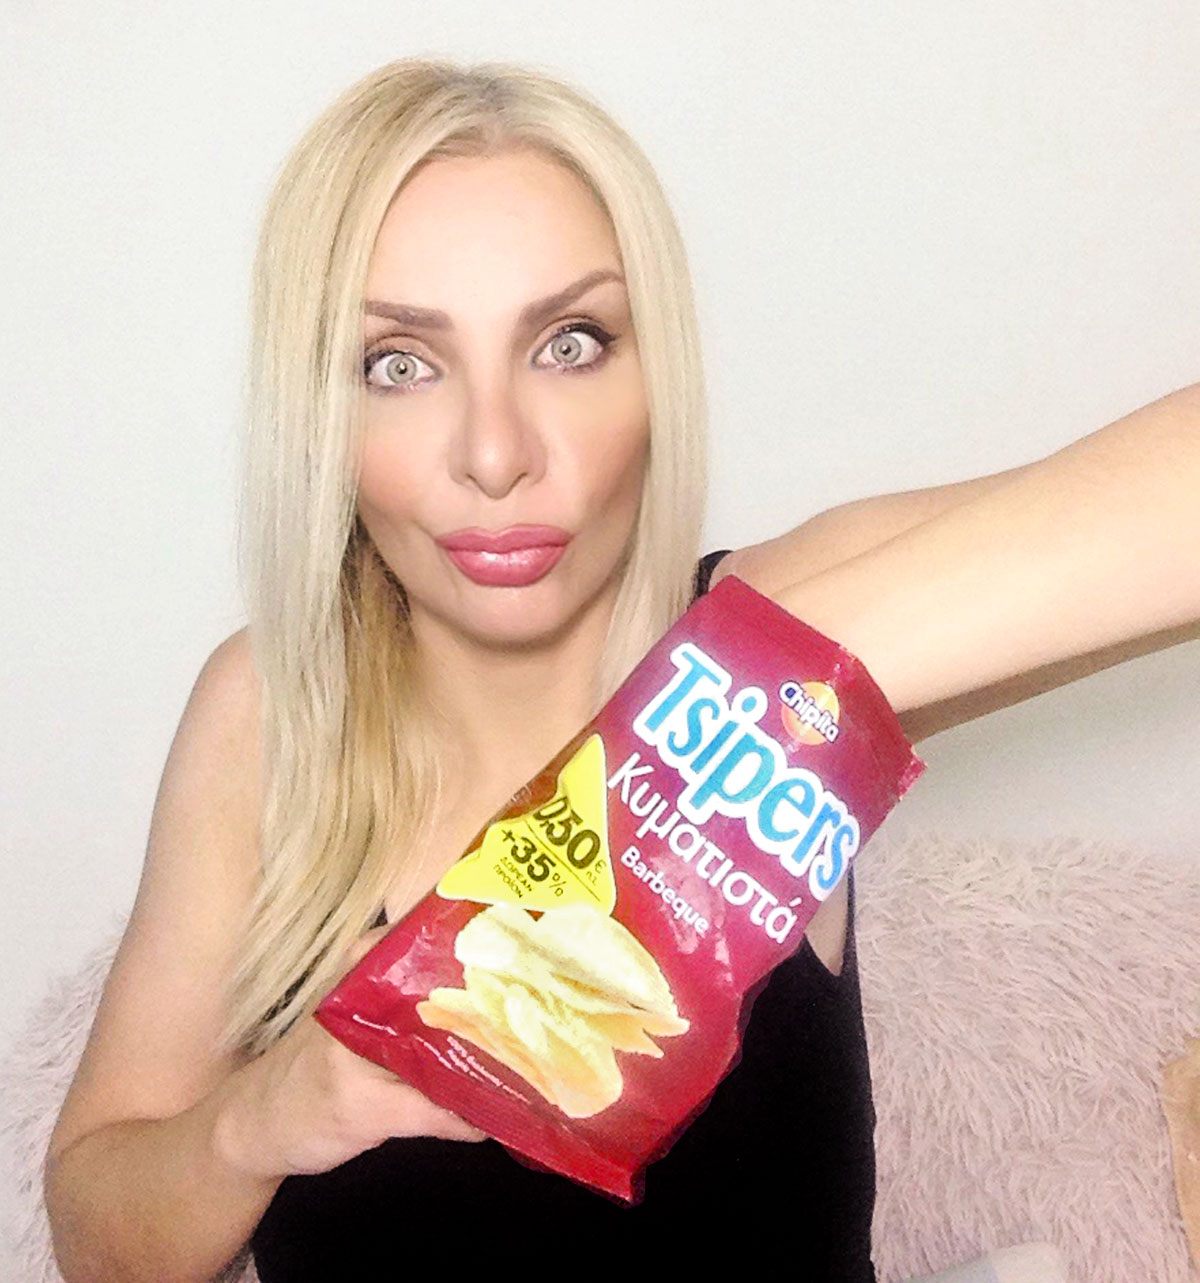 Wavy Tsipers Barbeque Chips flavour